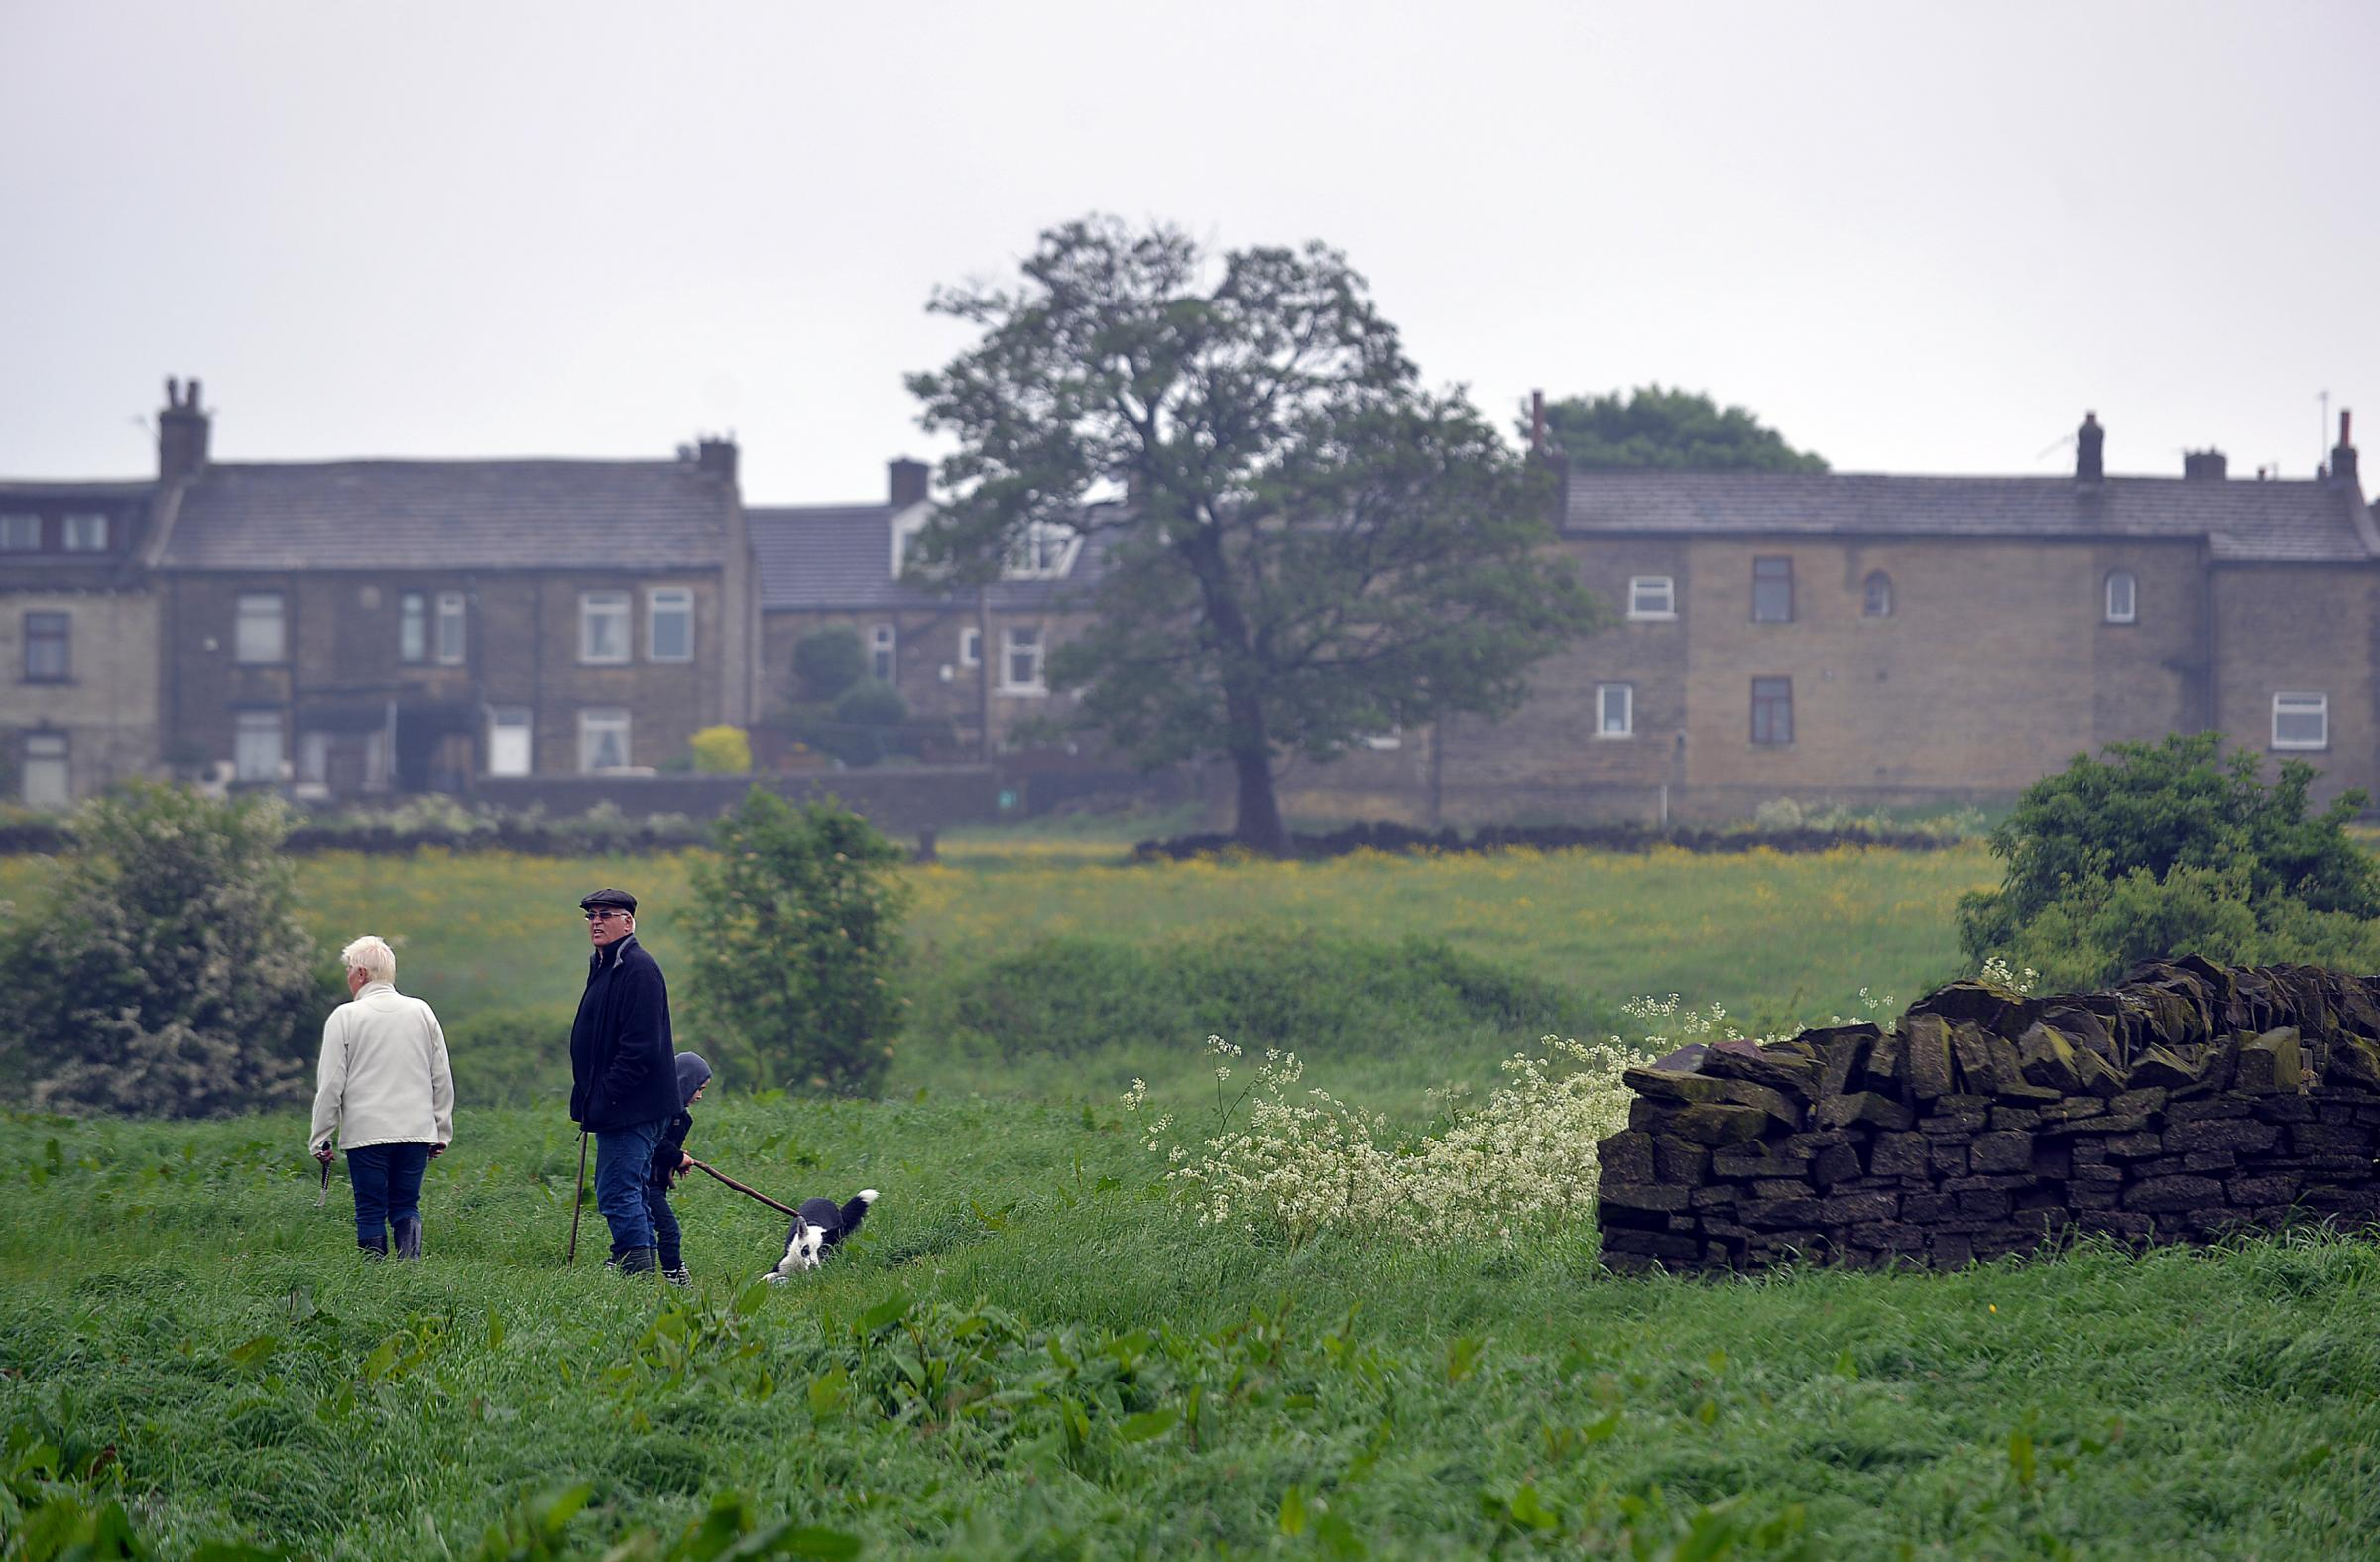 The fields in Allerton that could be developed